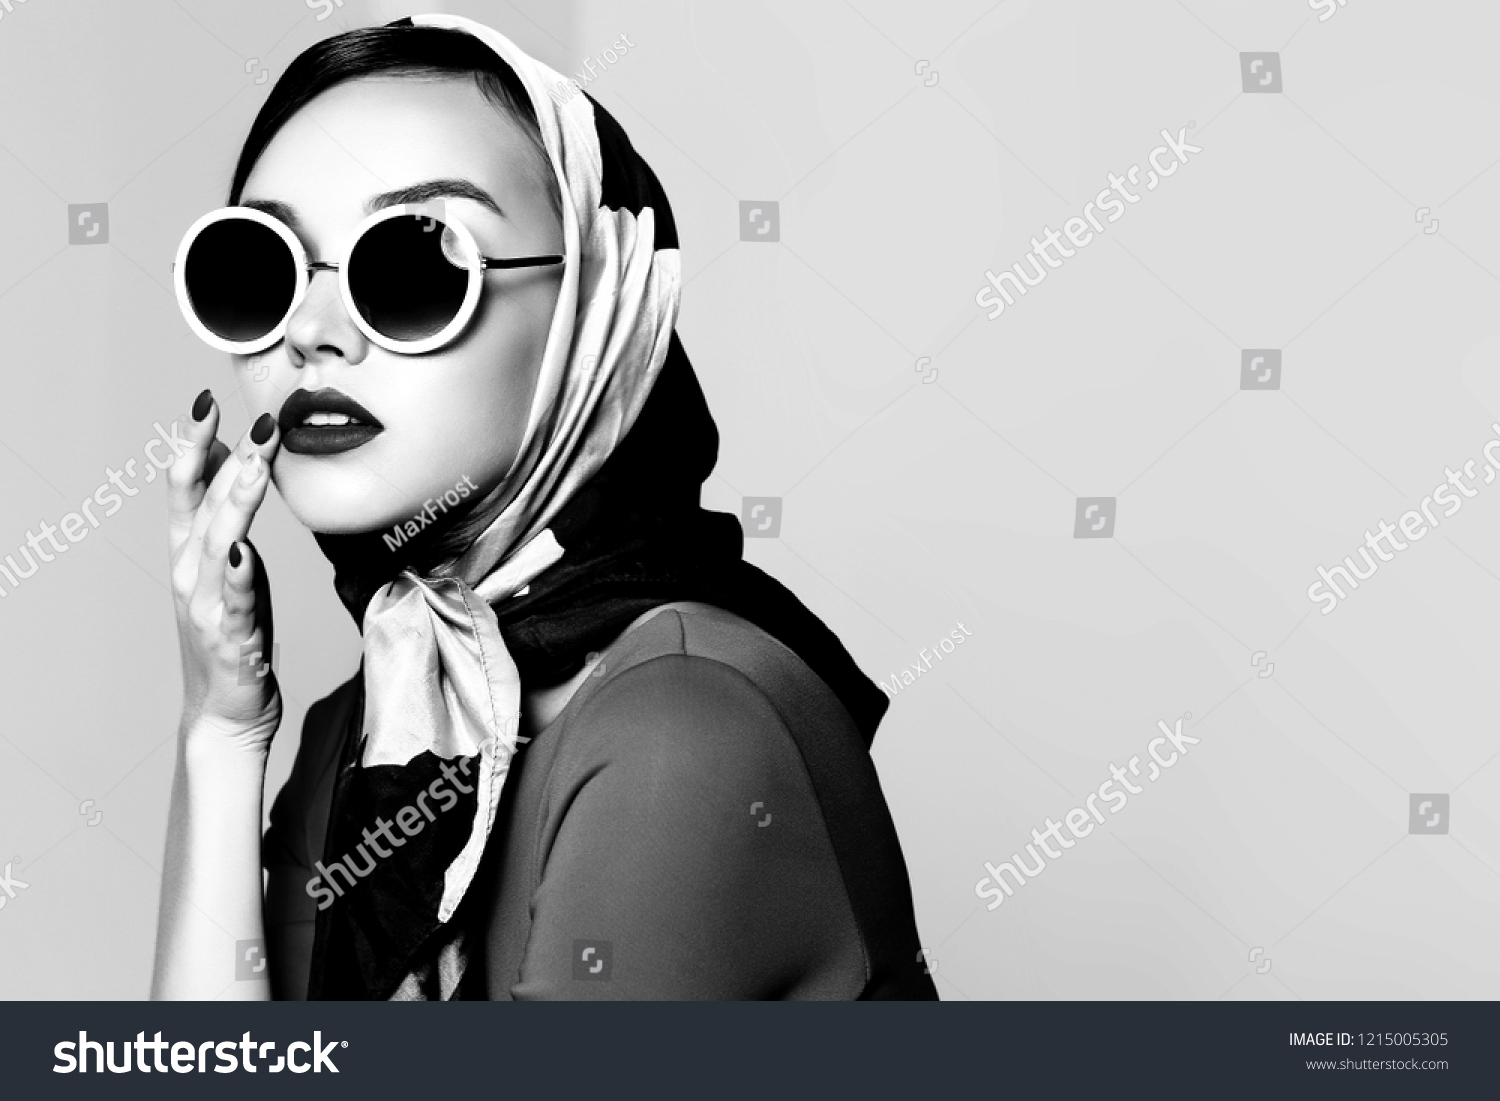 Young woman in retro style. Sunglasses and silk scarf. Sixties style fashion retro woman. Black and white image #1215005305